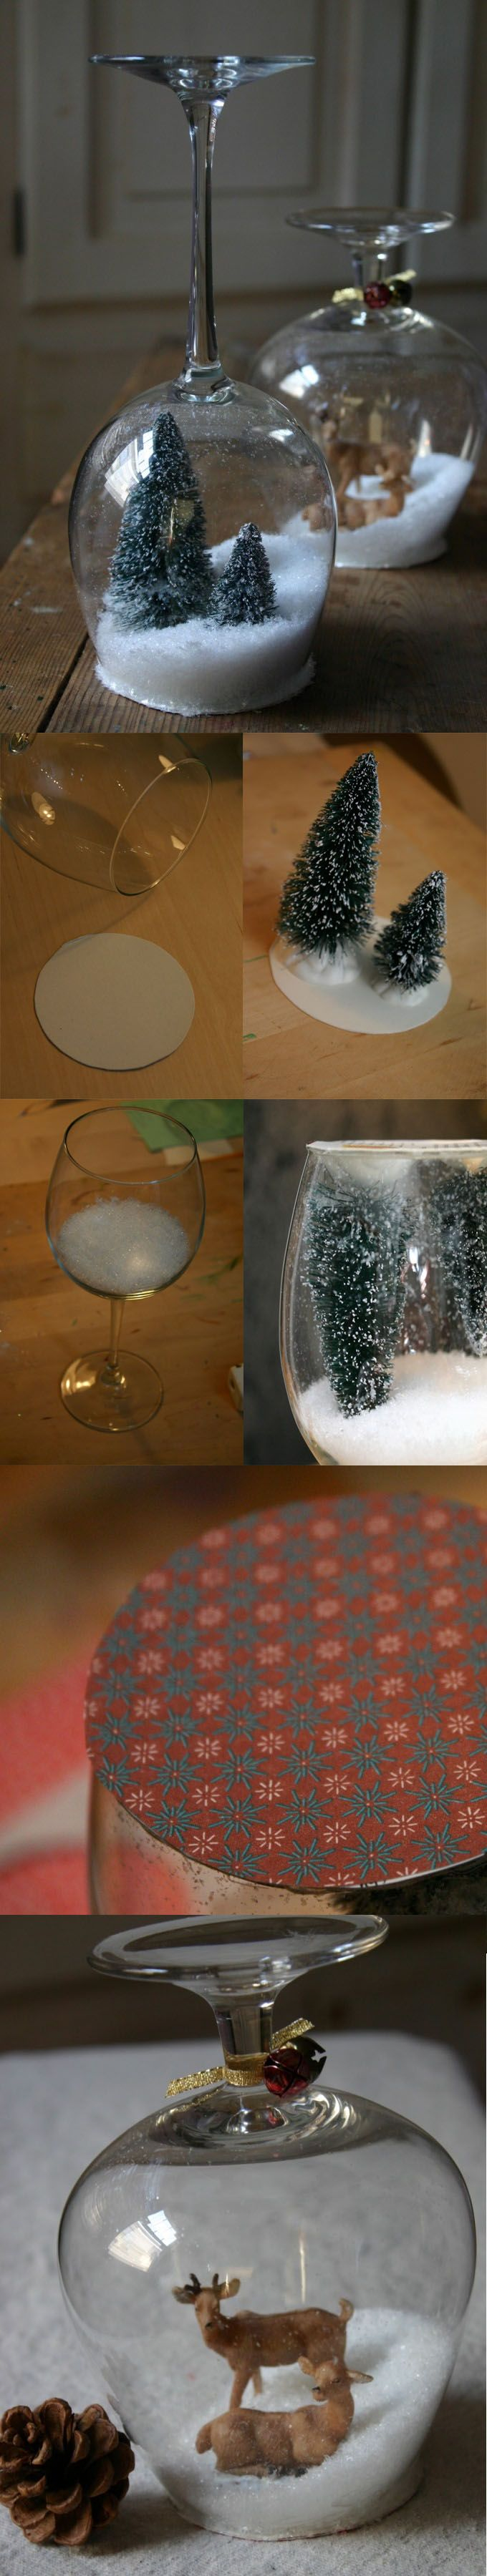 Okay, so this is just an adult craft, but a really cool one!  DIY :: Stemware Snow Globes ( http://cfabbridesigns.com/holidays/christmas/stemware-snow-globe/#.UL-TFYdQCKQ )